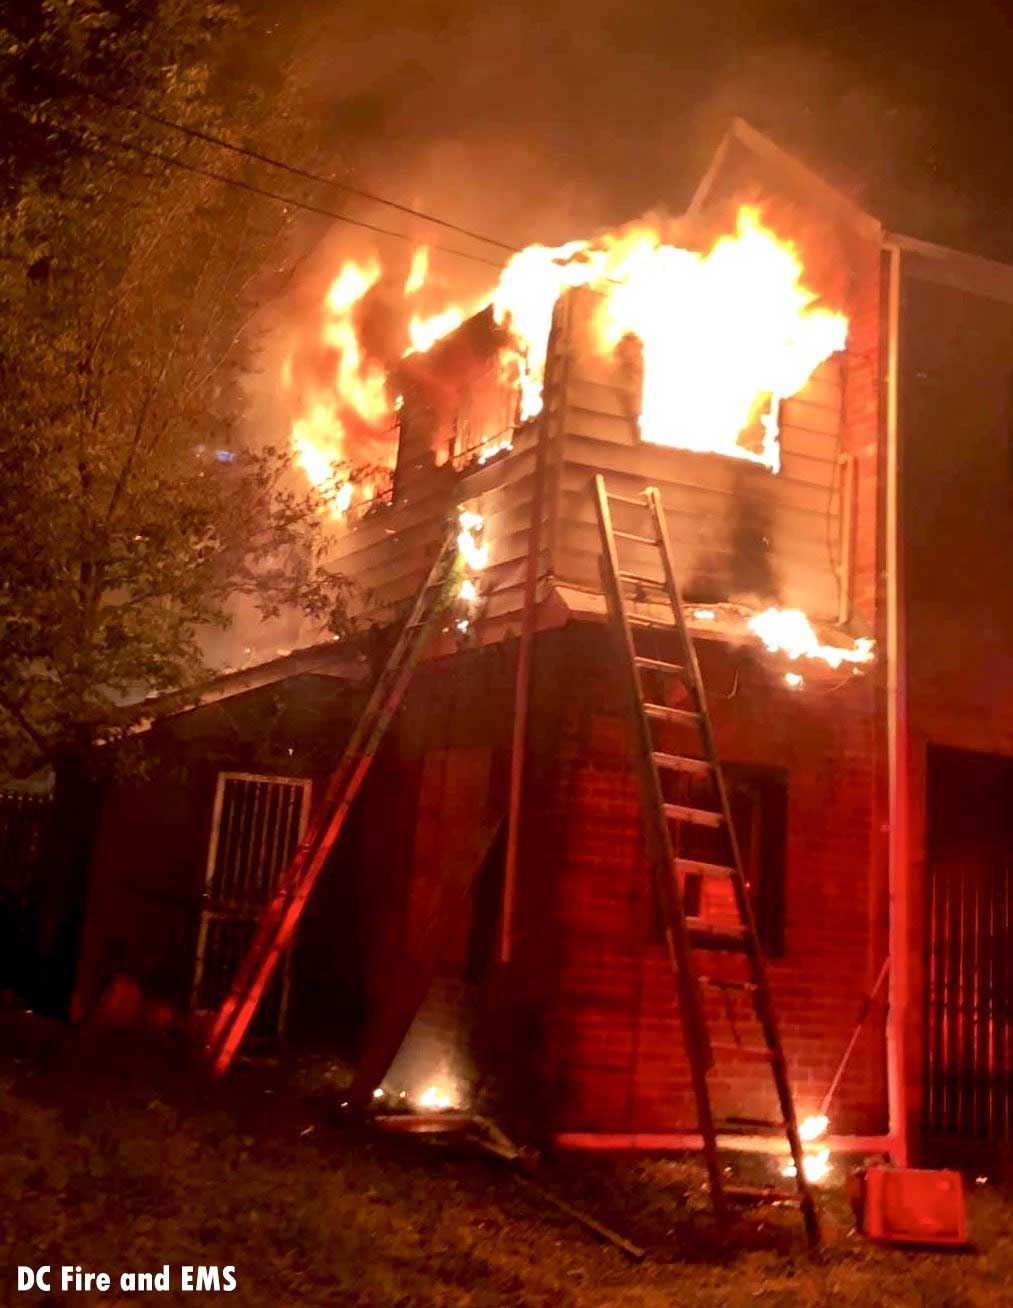 View of a ladder and massive flames venting from a building in D.C.